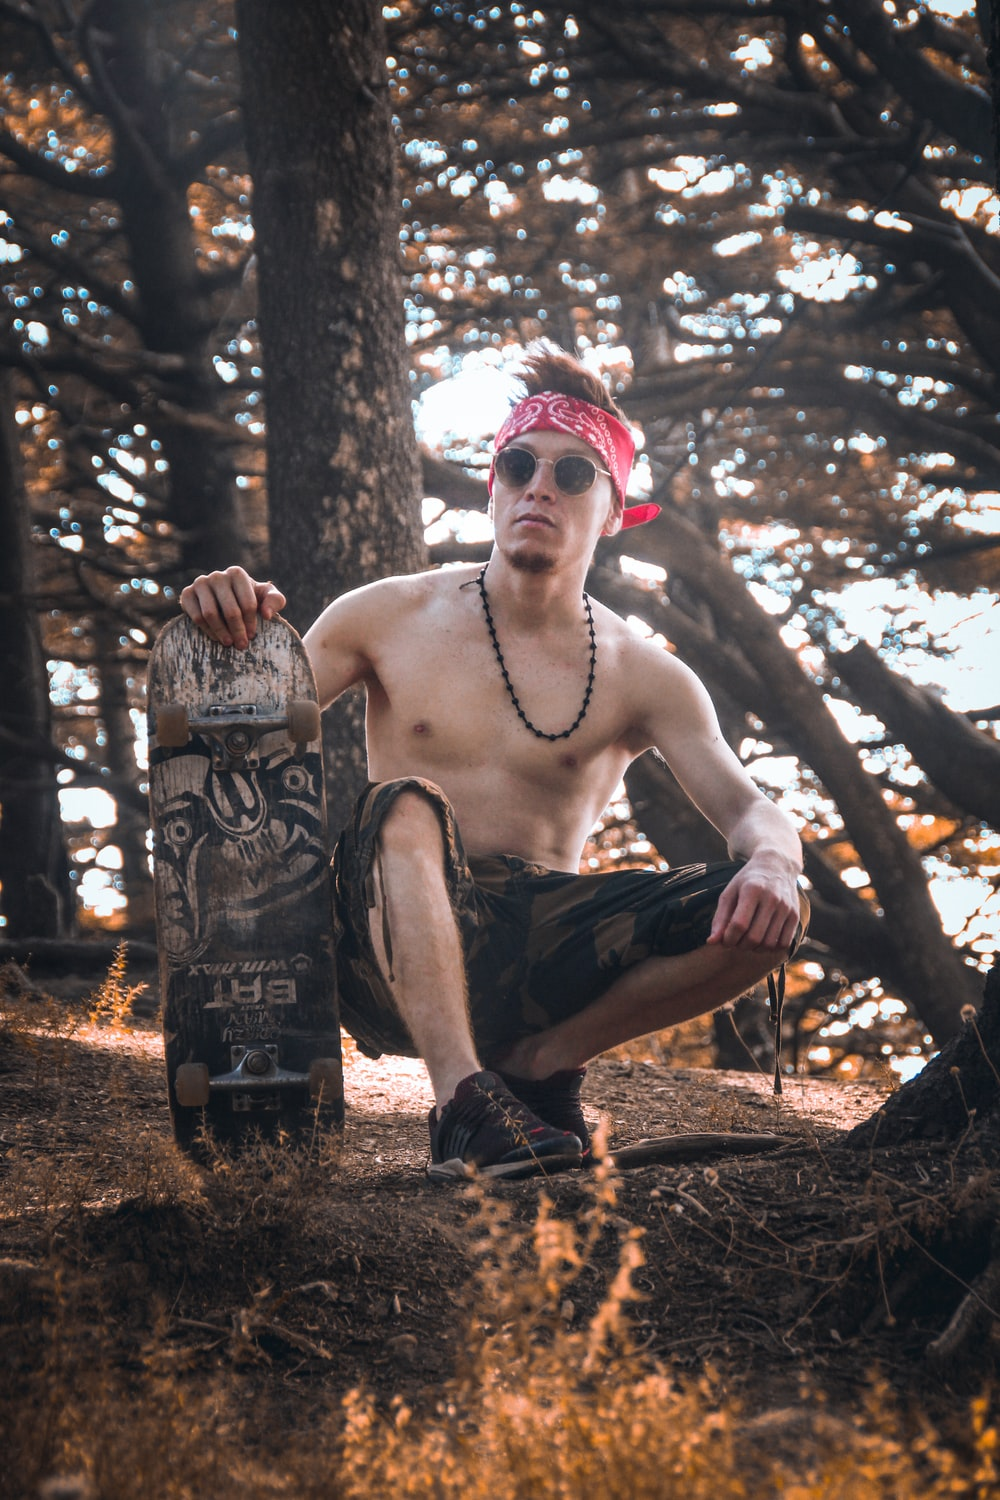 man squatting and holding skateboard near trees